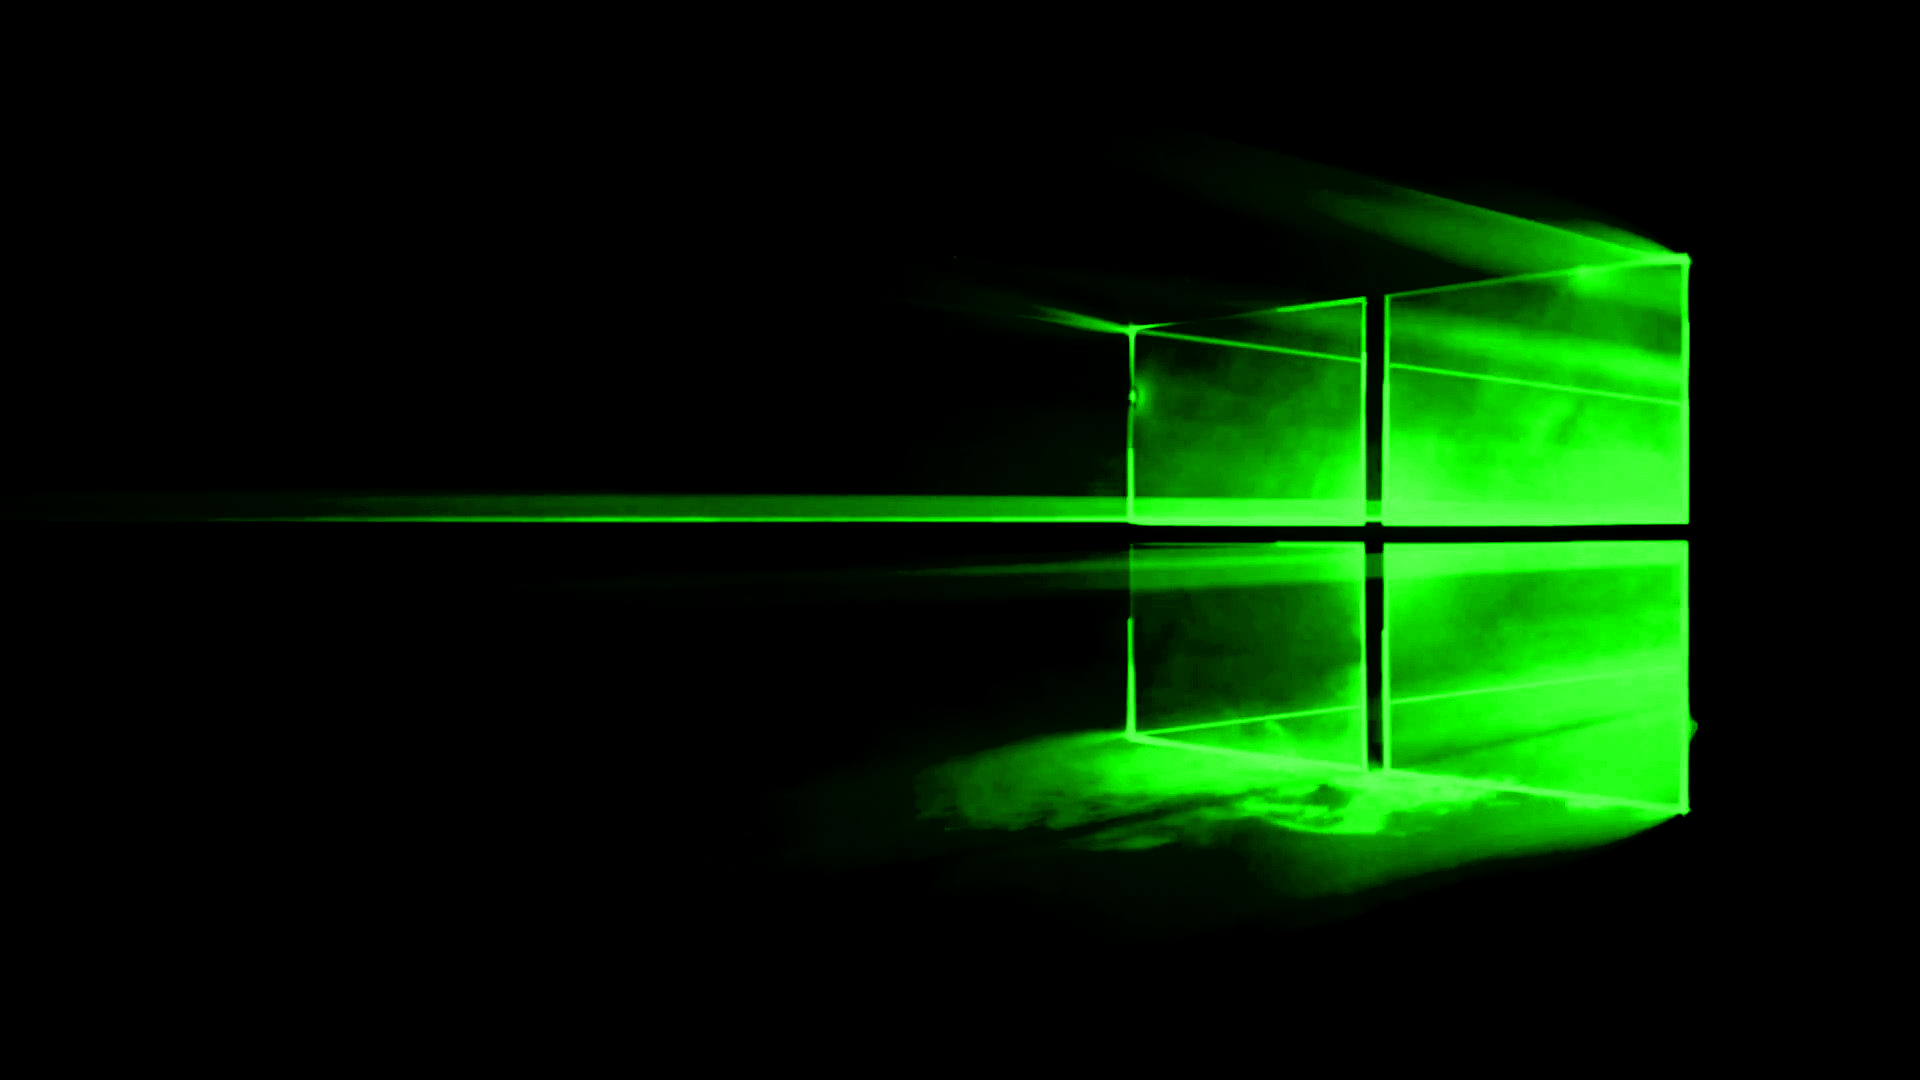 Free Download Green Windows 10 Wallpaper Imgur 1920x1080 For